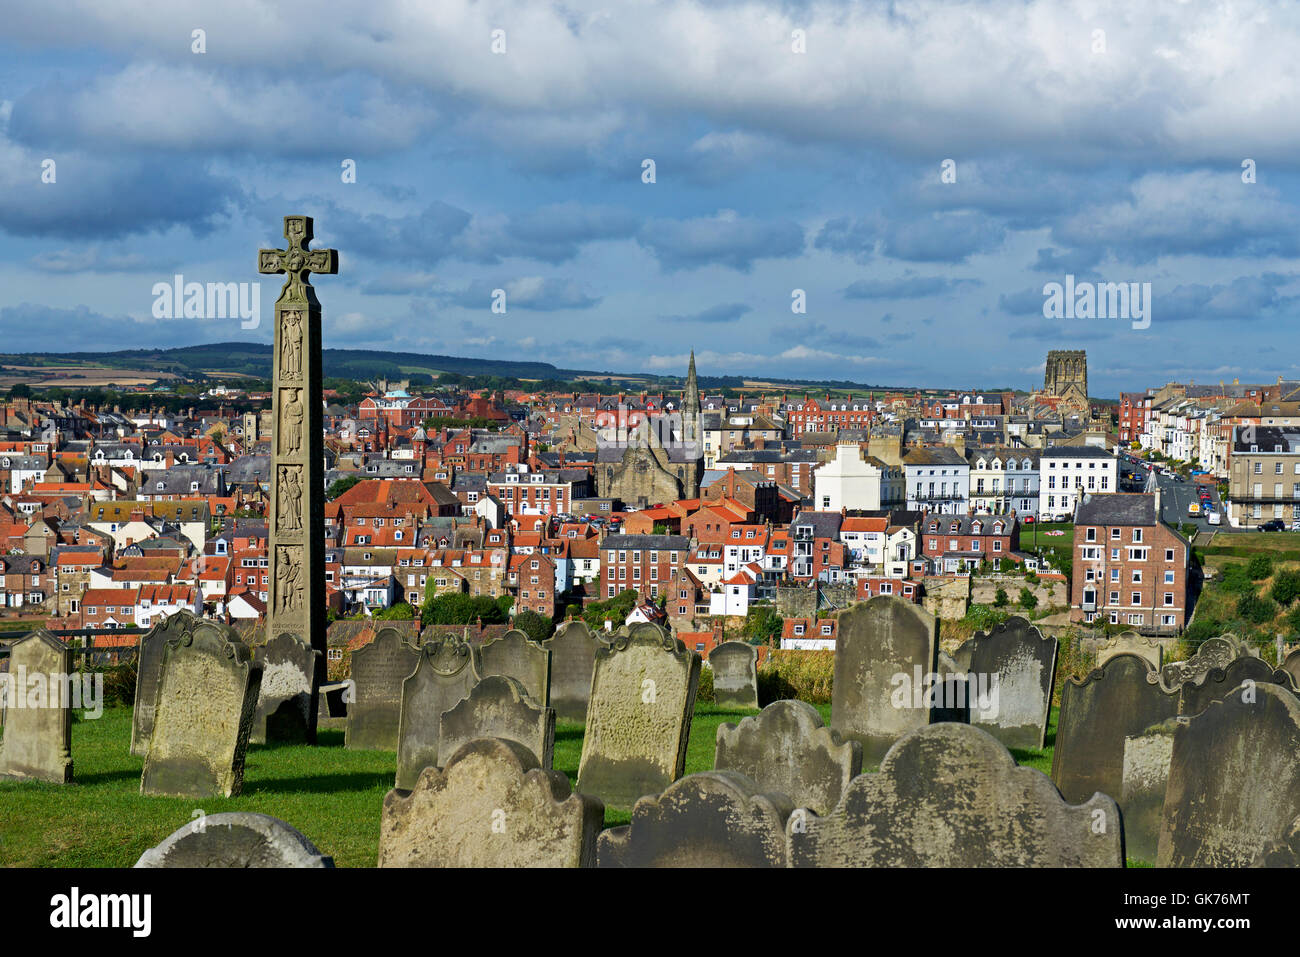 View of Whitby from the graveyard of St Mary's Church, North Yorkshire, England UK Stock Photo